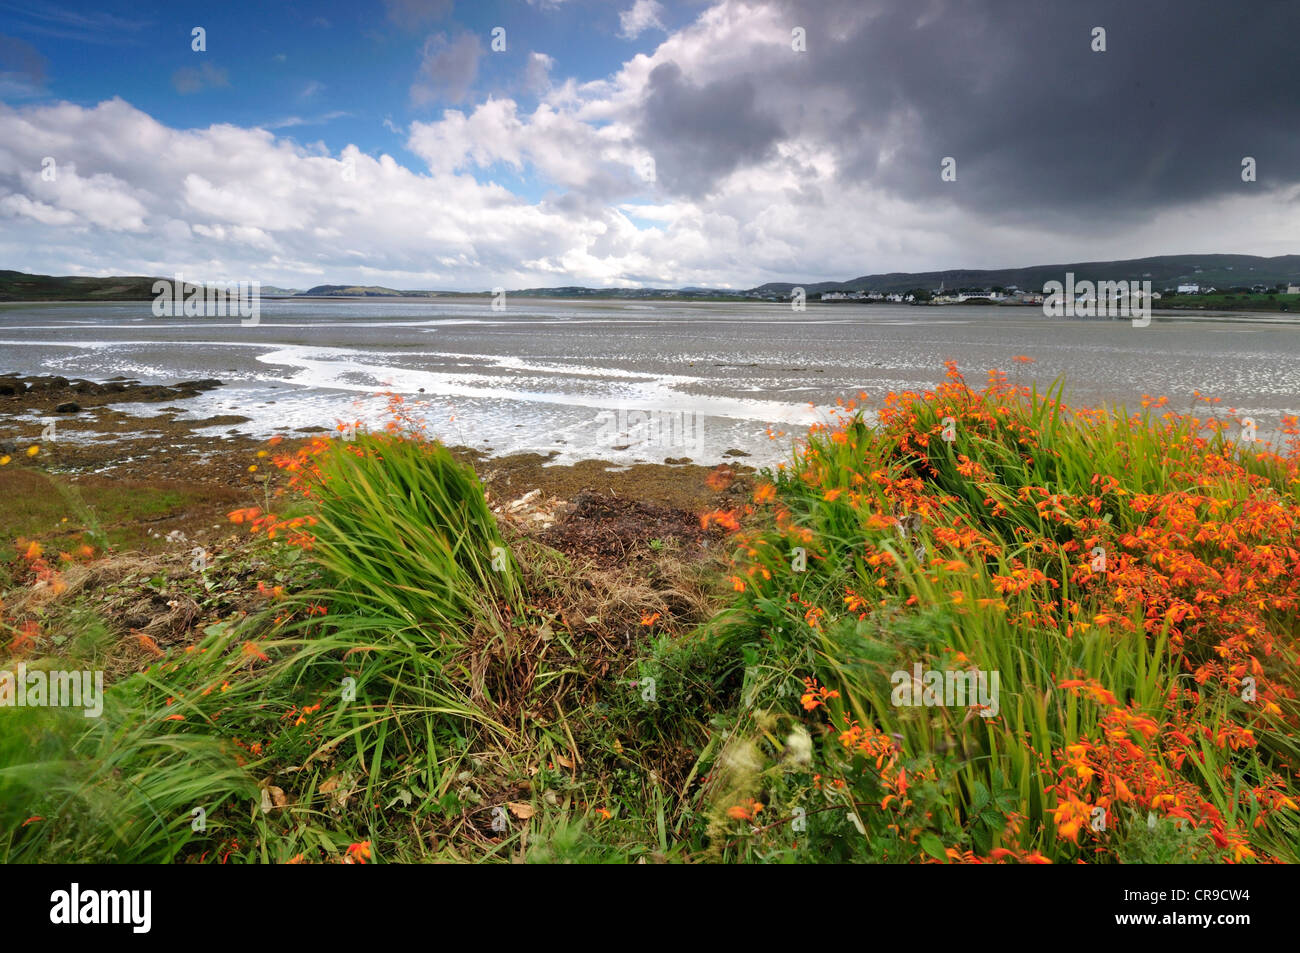 Dunfanaghy, Donegal, Ireland, Europe - Stock Image